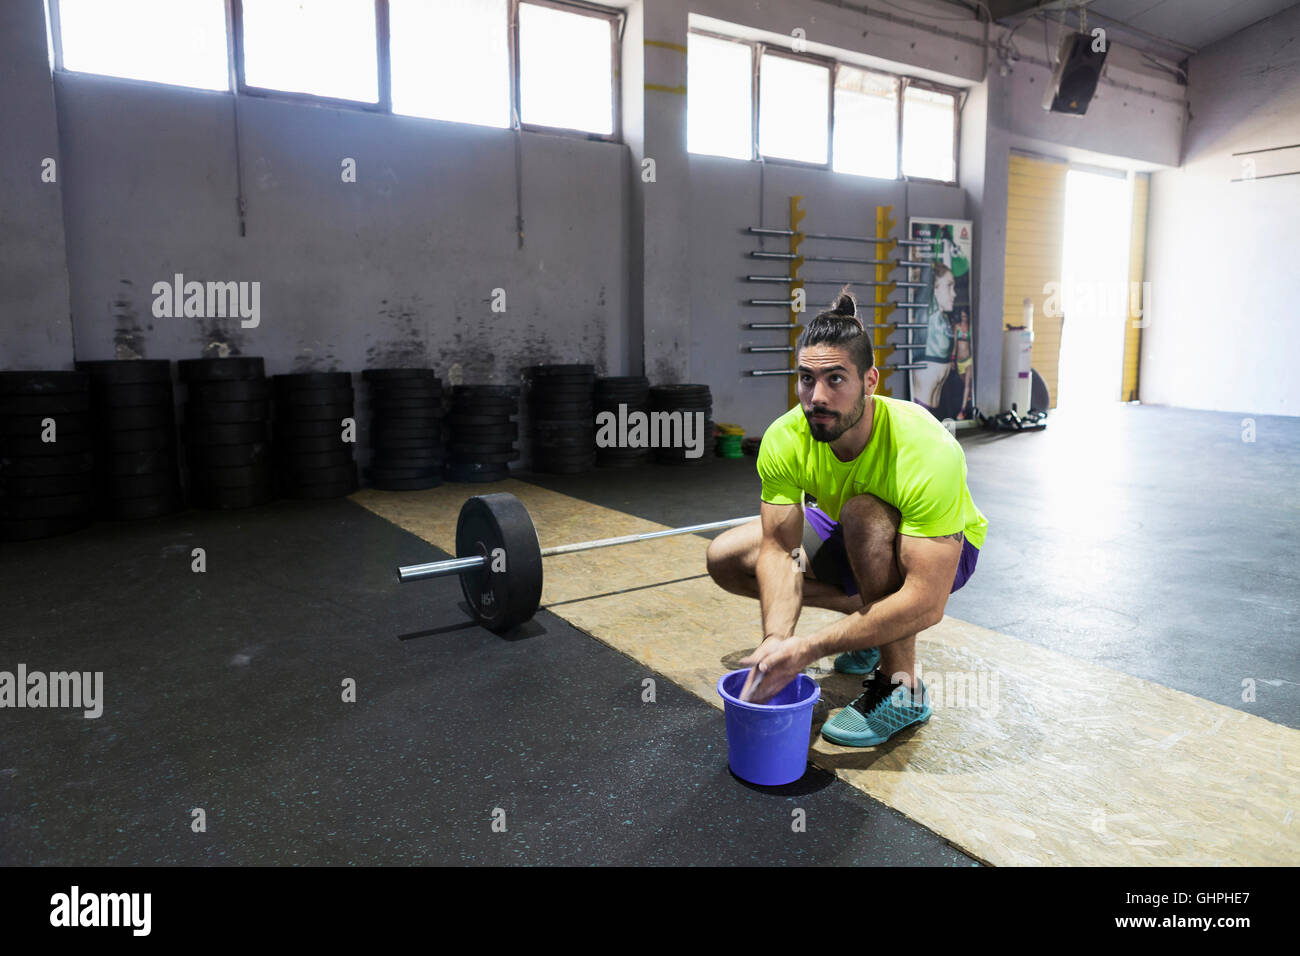 Athlete in gym prepares for weightlifting - Stock Image